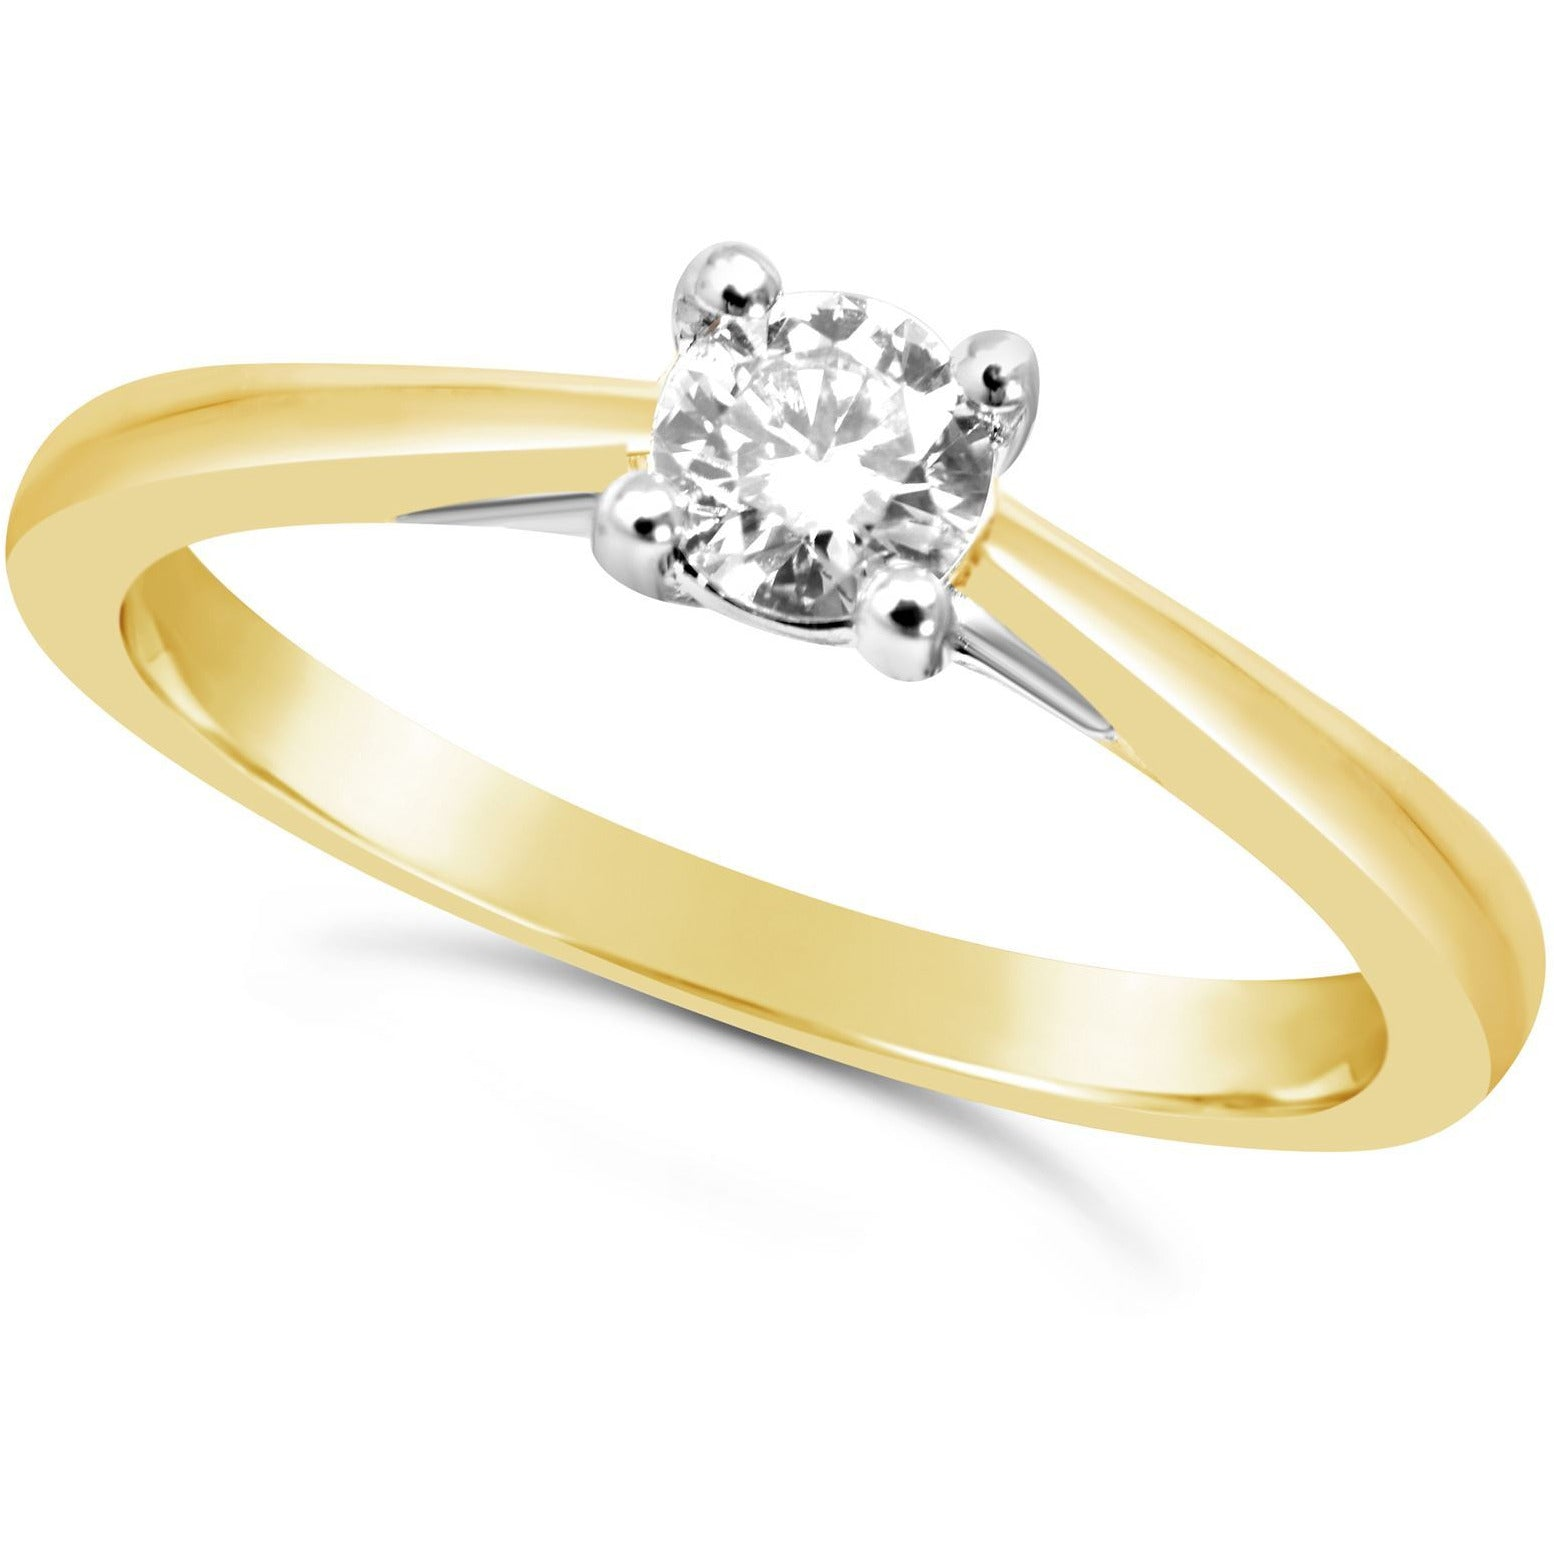 1/4 carat yellow gold diamond ring for women - 4 claw - G&S Diamonds